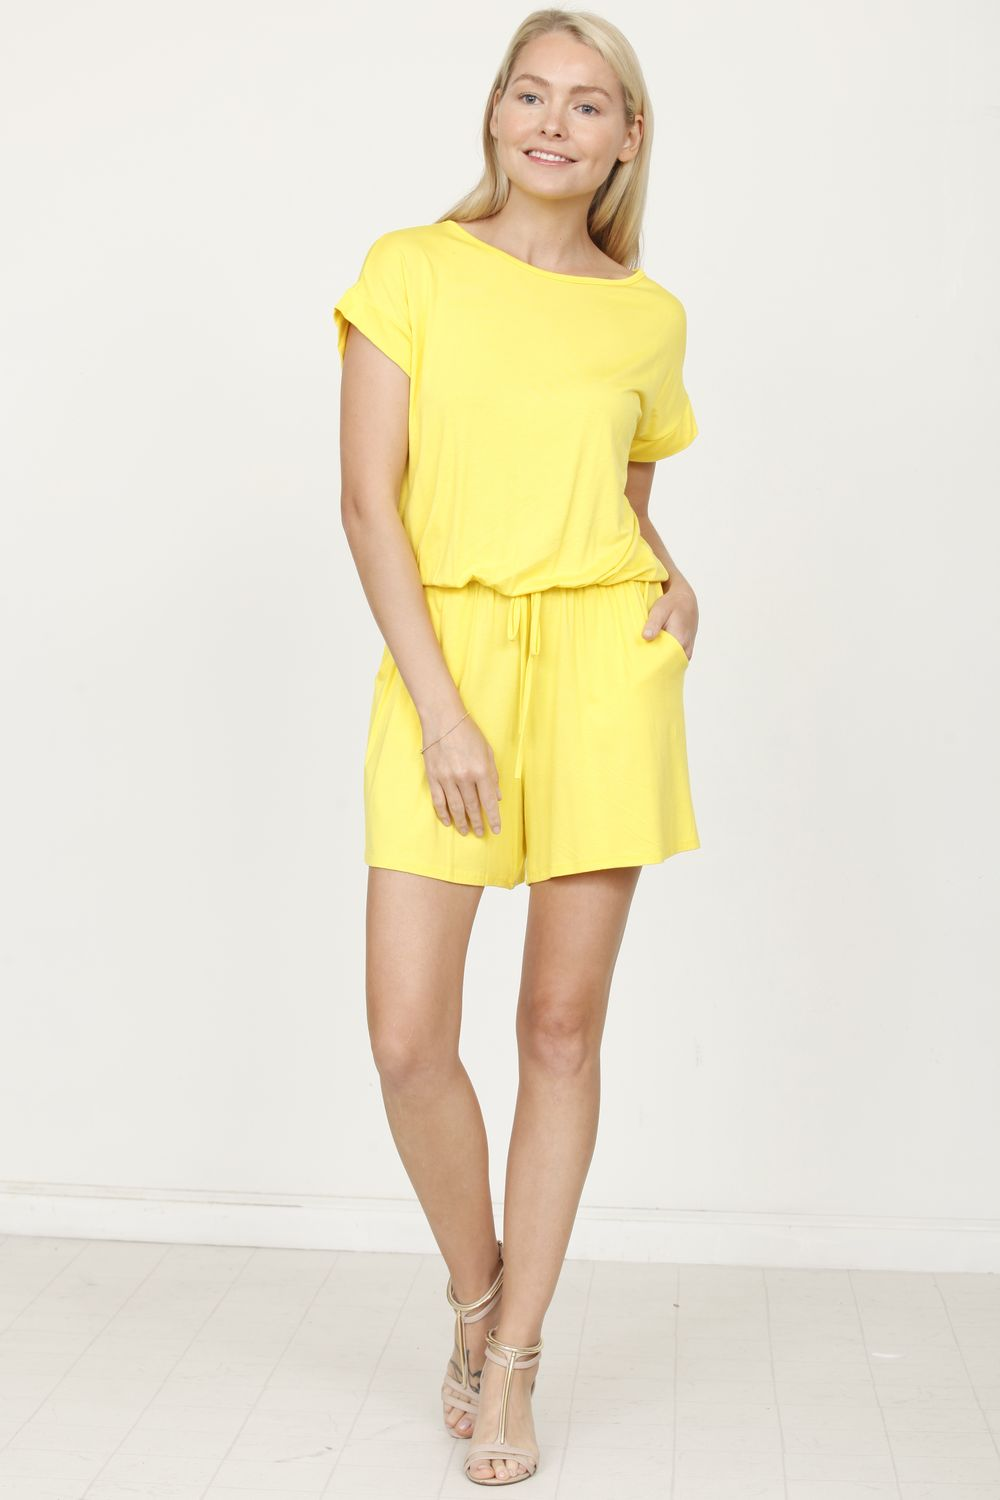 Solid Yellow Short Sleeve Romper